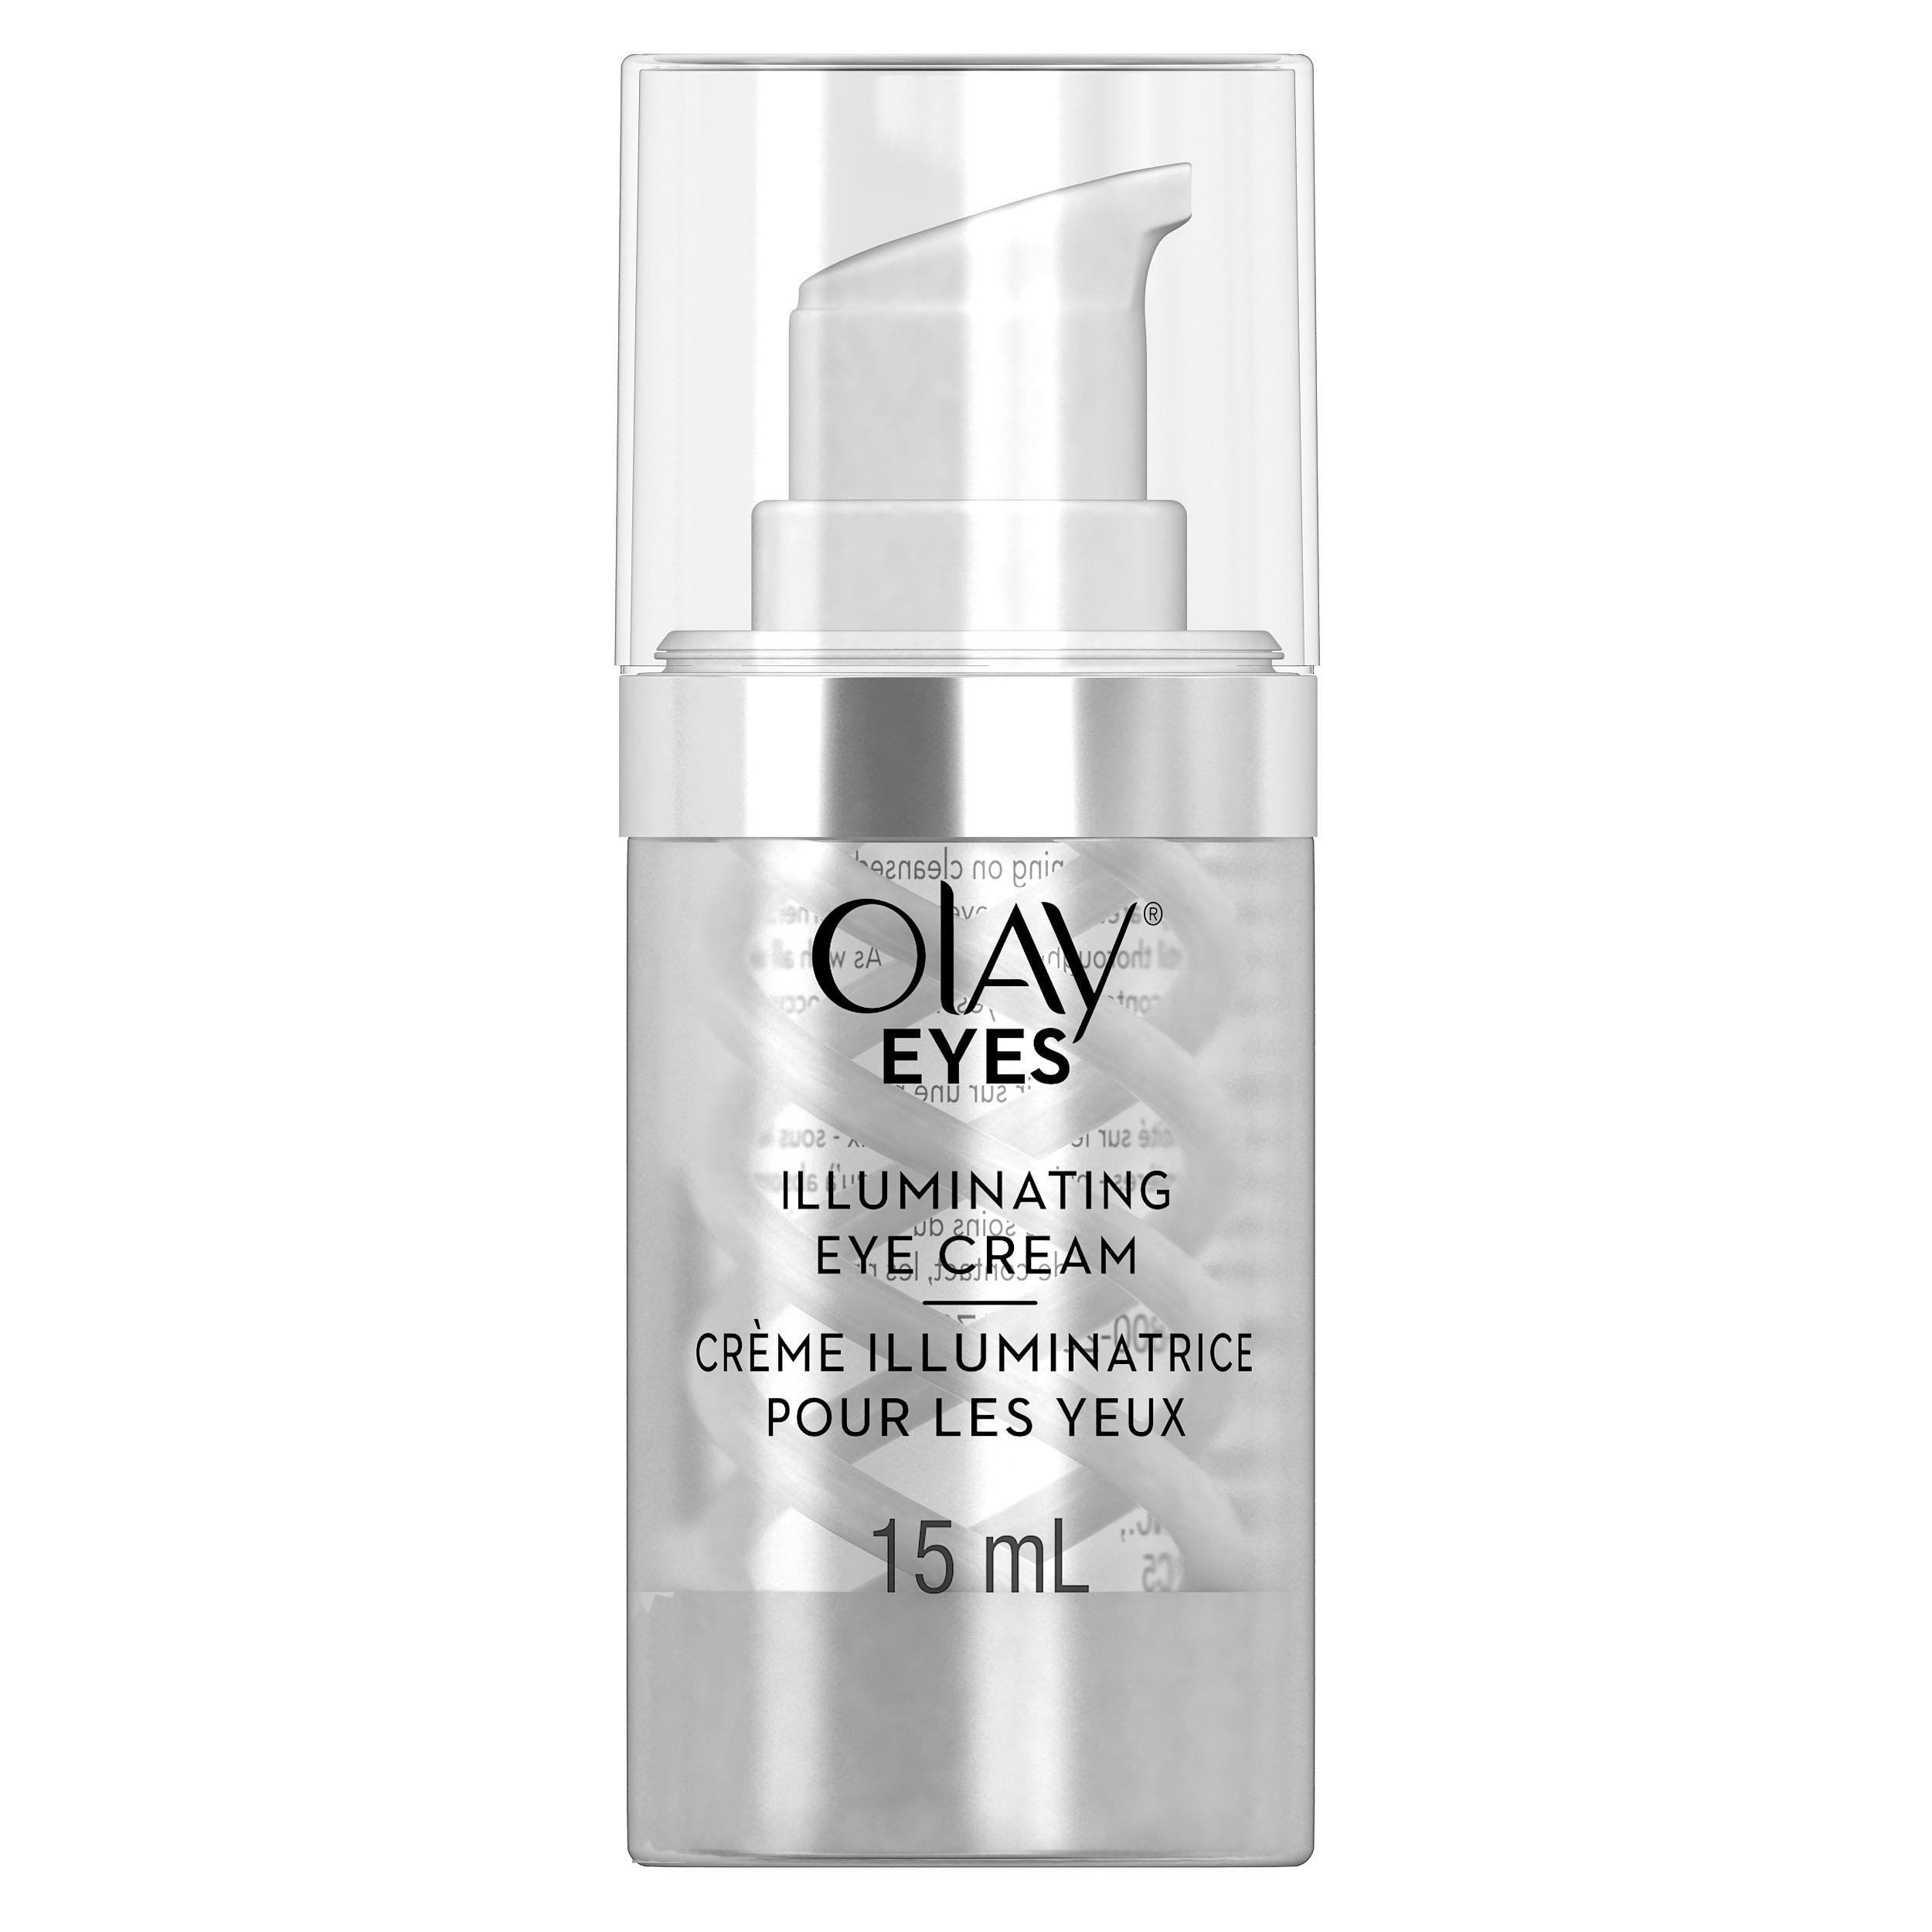 olay_eyes_illuminating_eye_cream-1